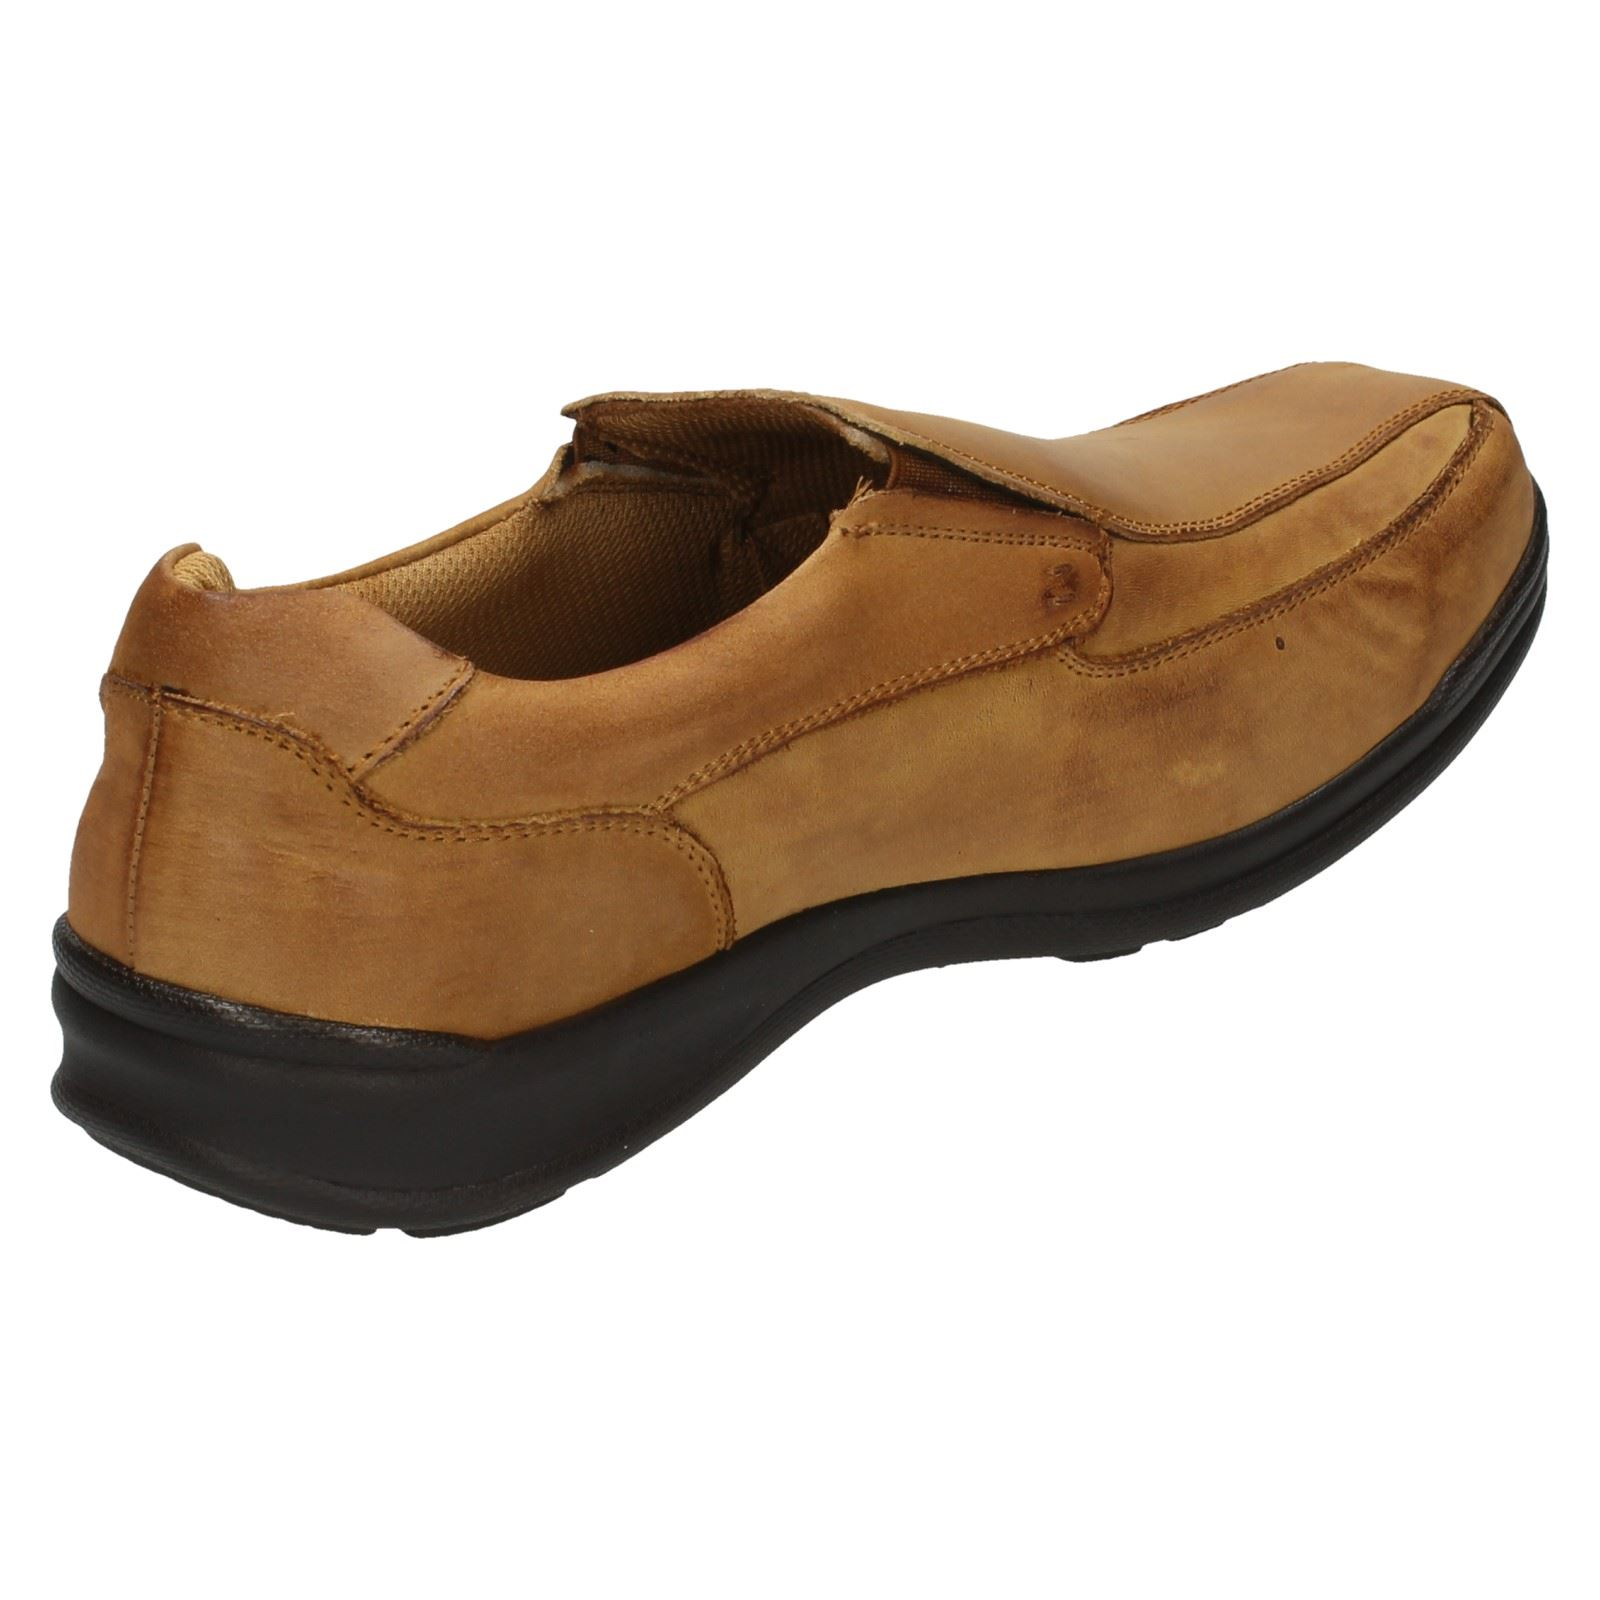 mens free step casual leather slip on shoes william ebay